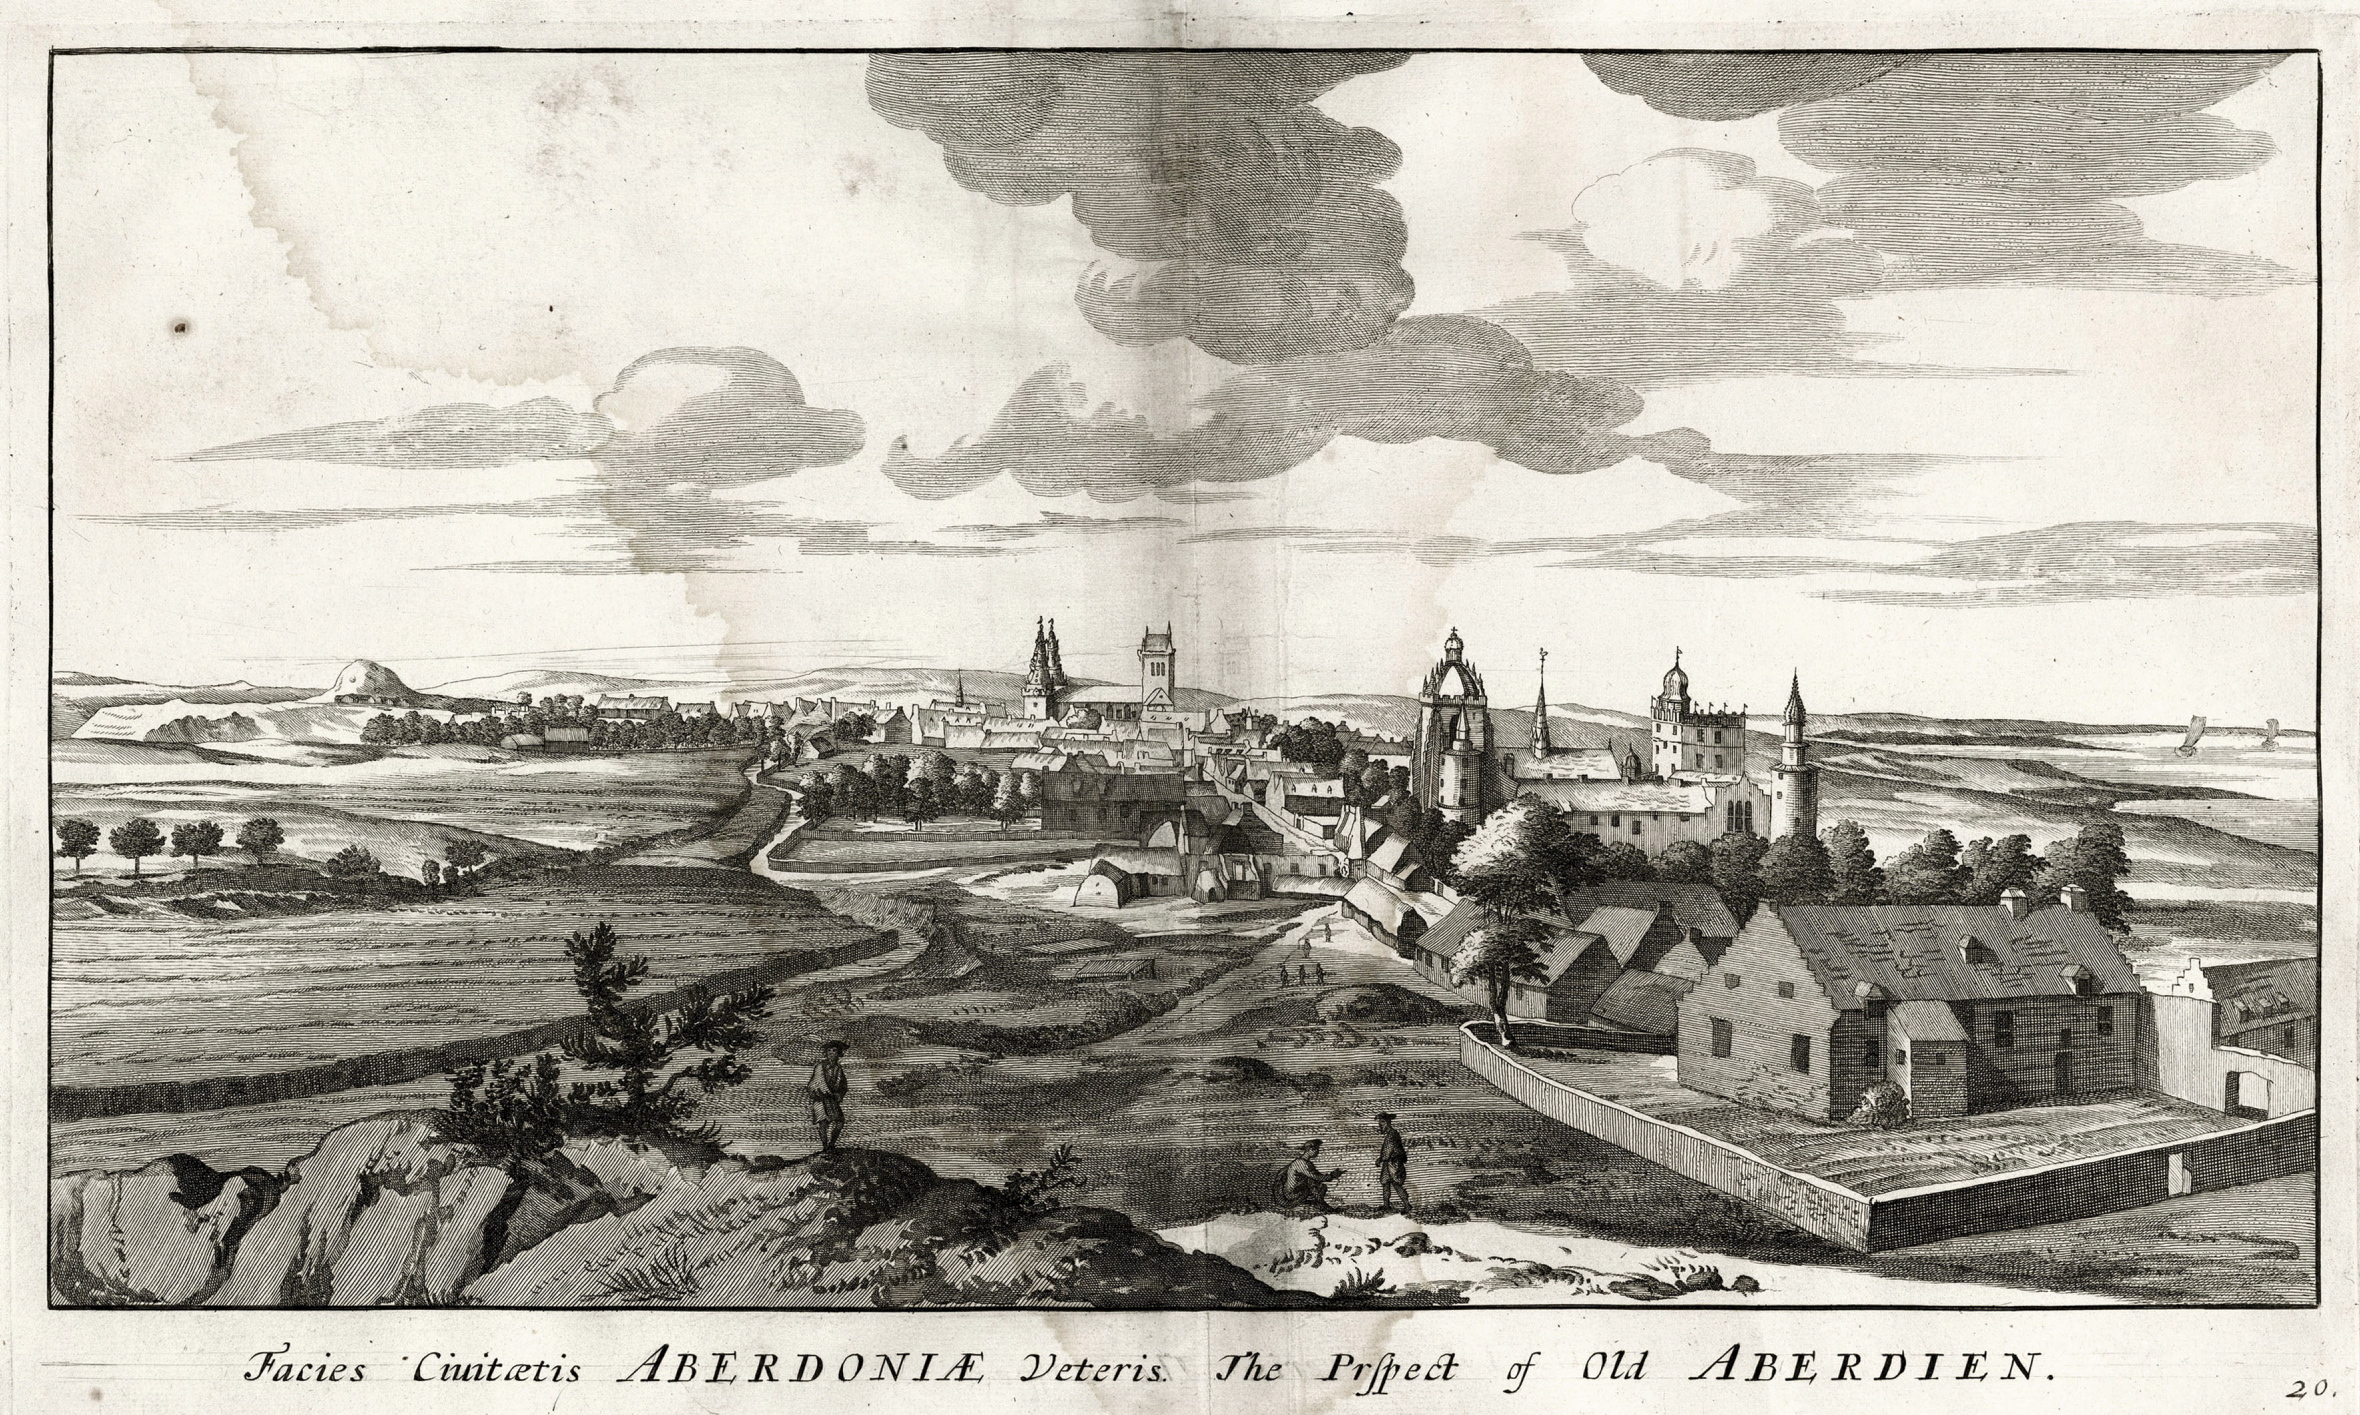 Past:  The University of Aberdeen, then known as King's College, in 1693.  pictures courtesy of university of aberdeen